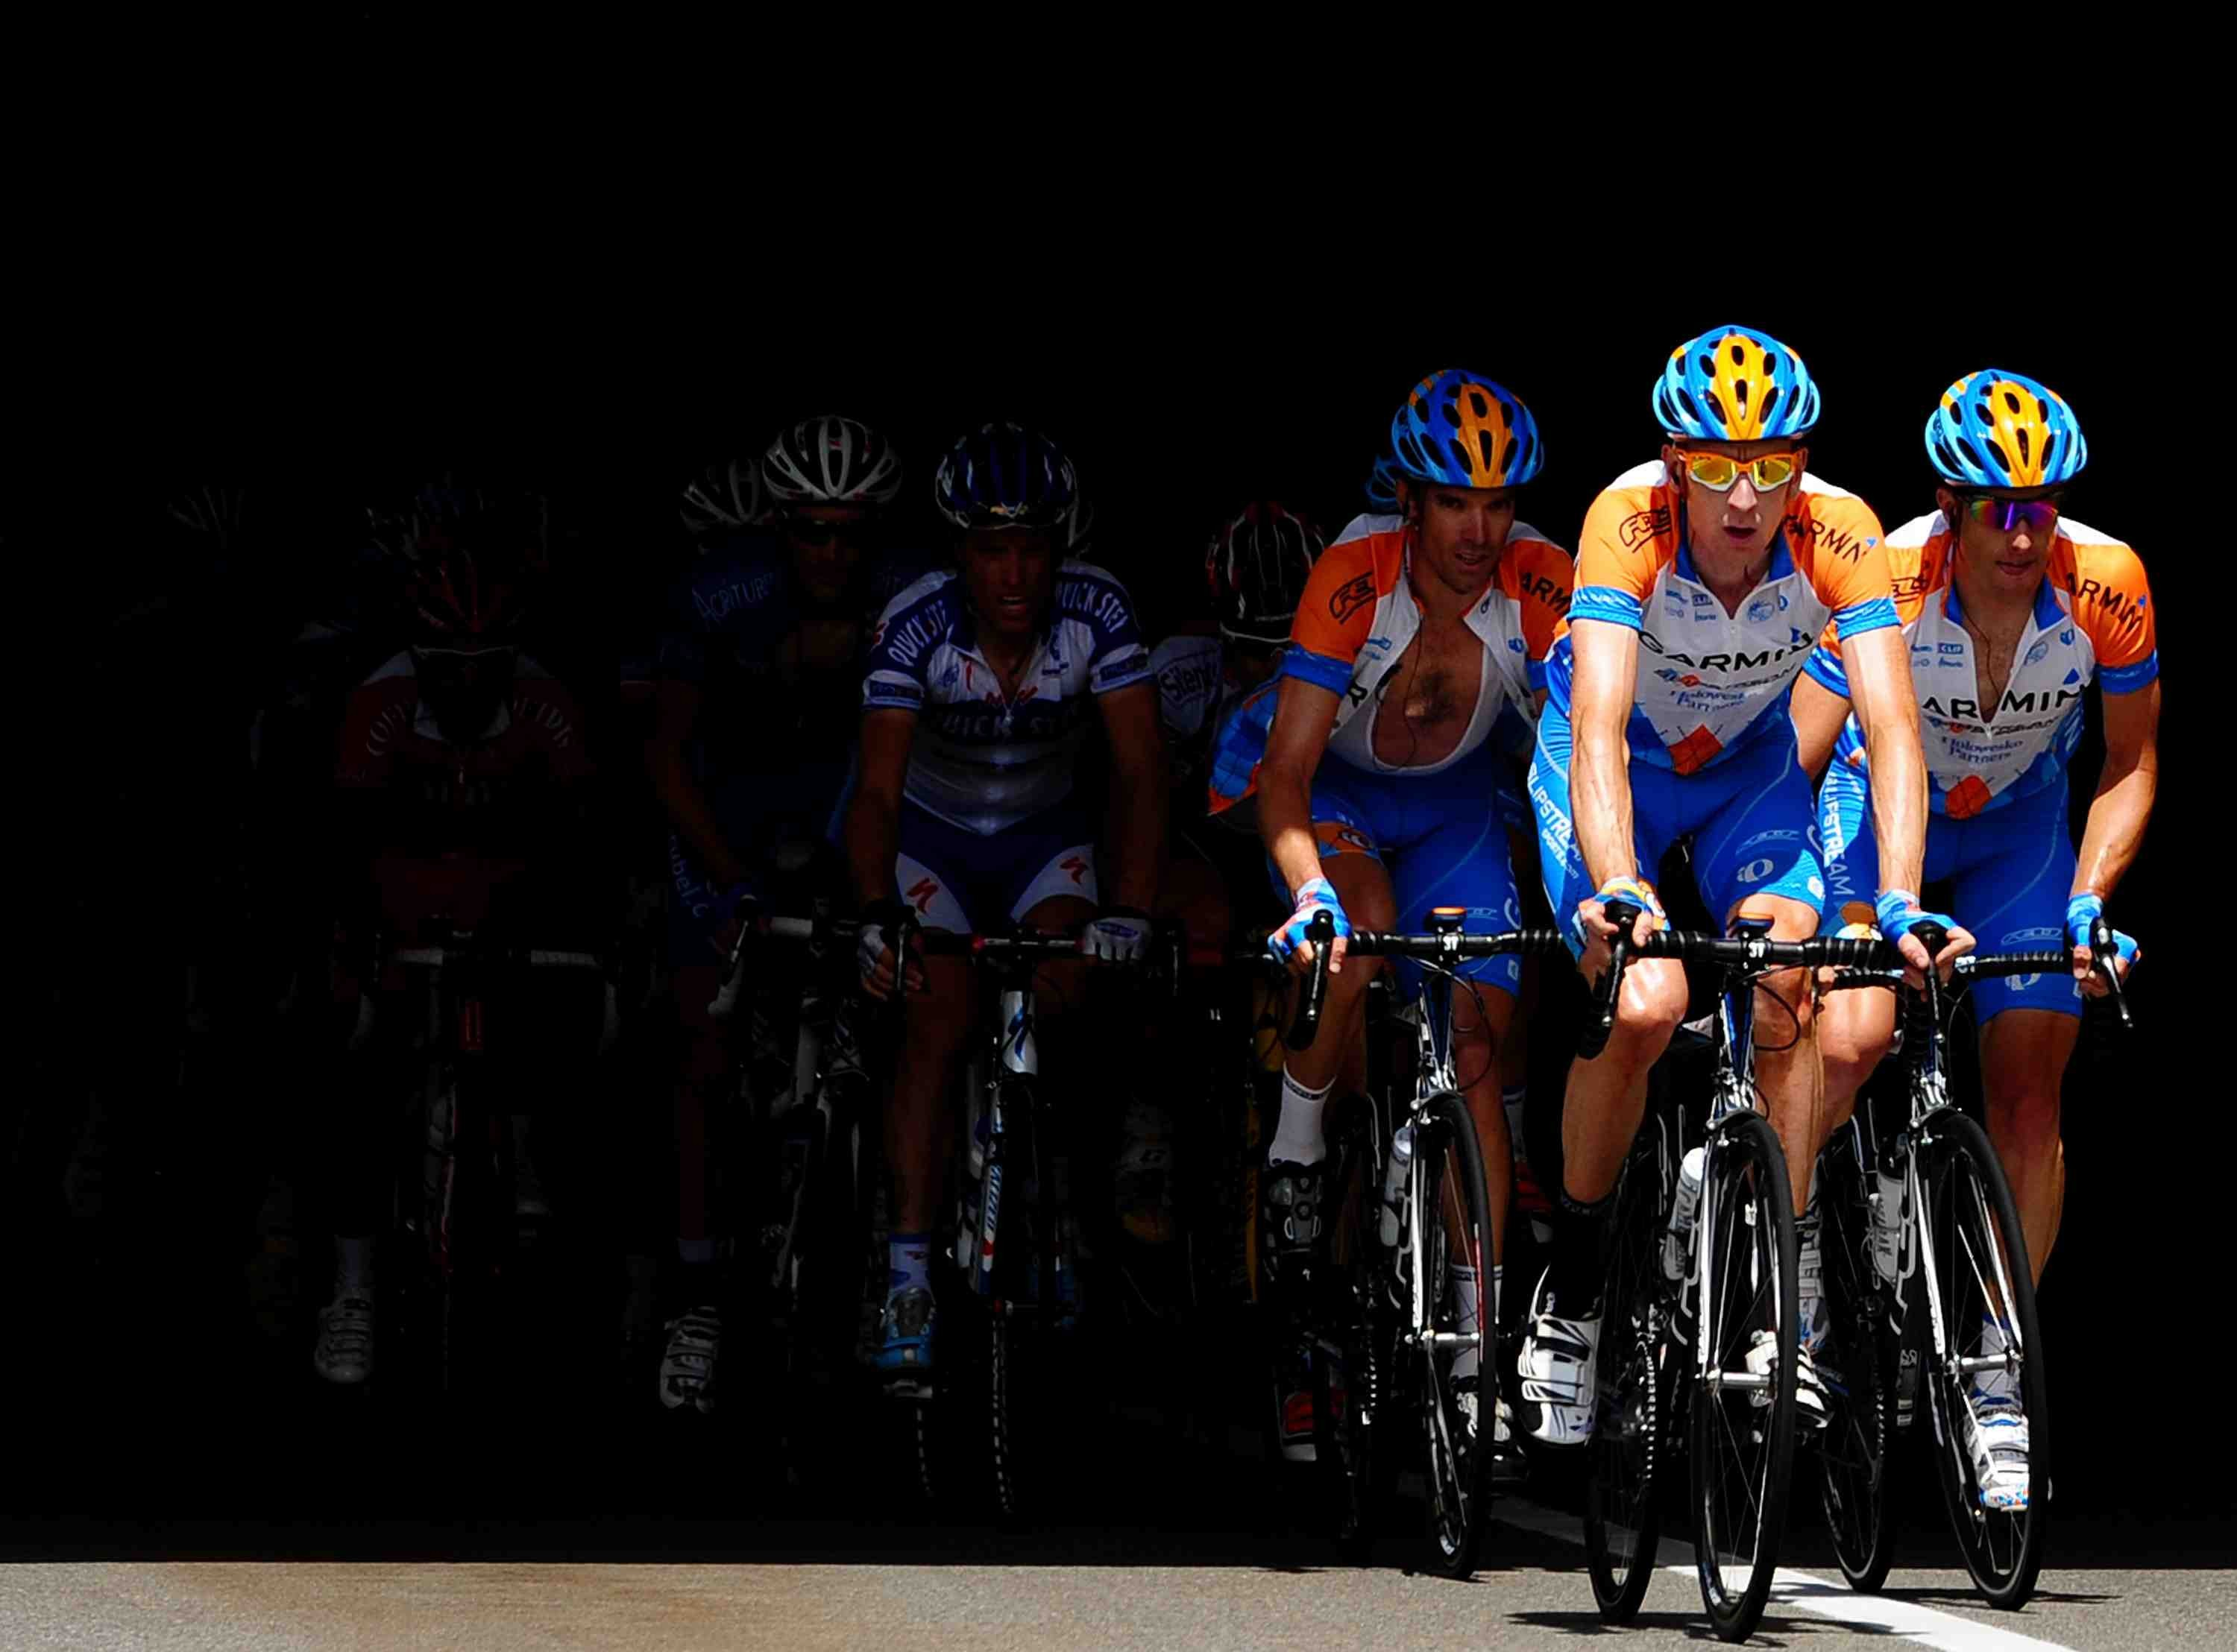 Garmin's Bradley Wiggins leads teammates David Millar and Christian Vande Velde on stage 16.